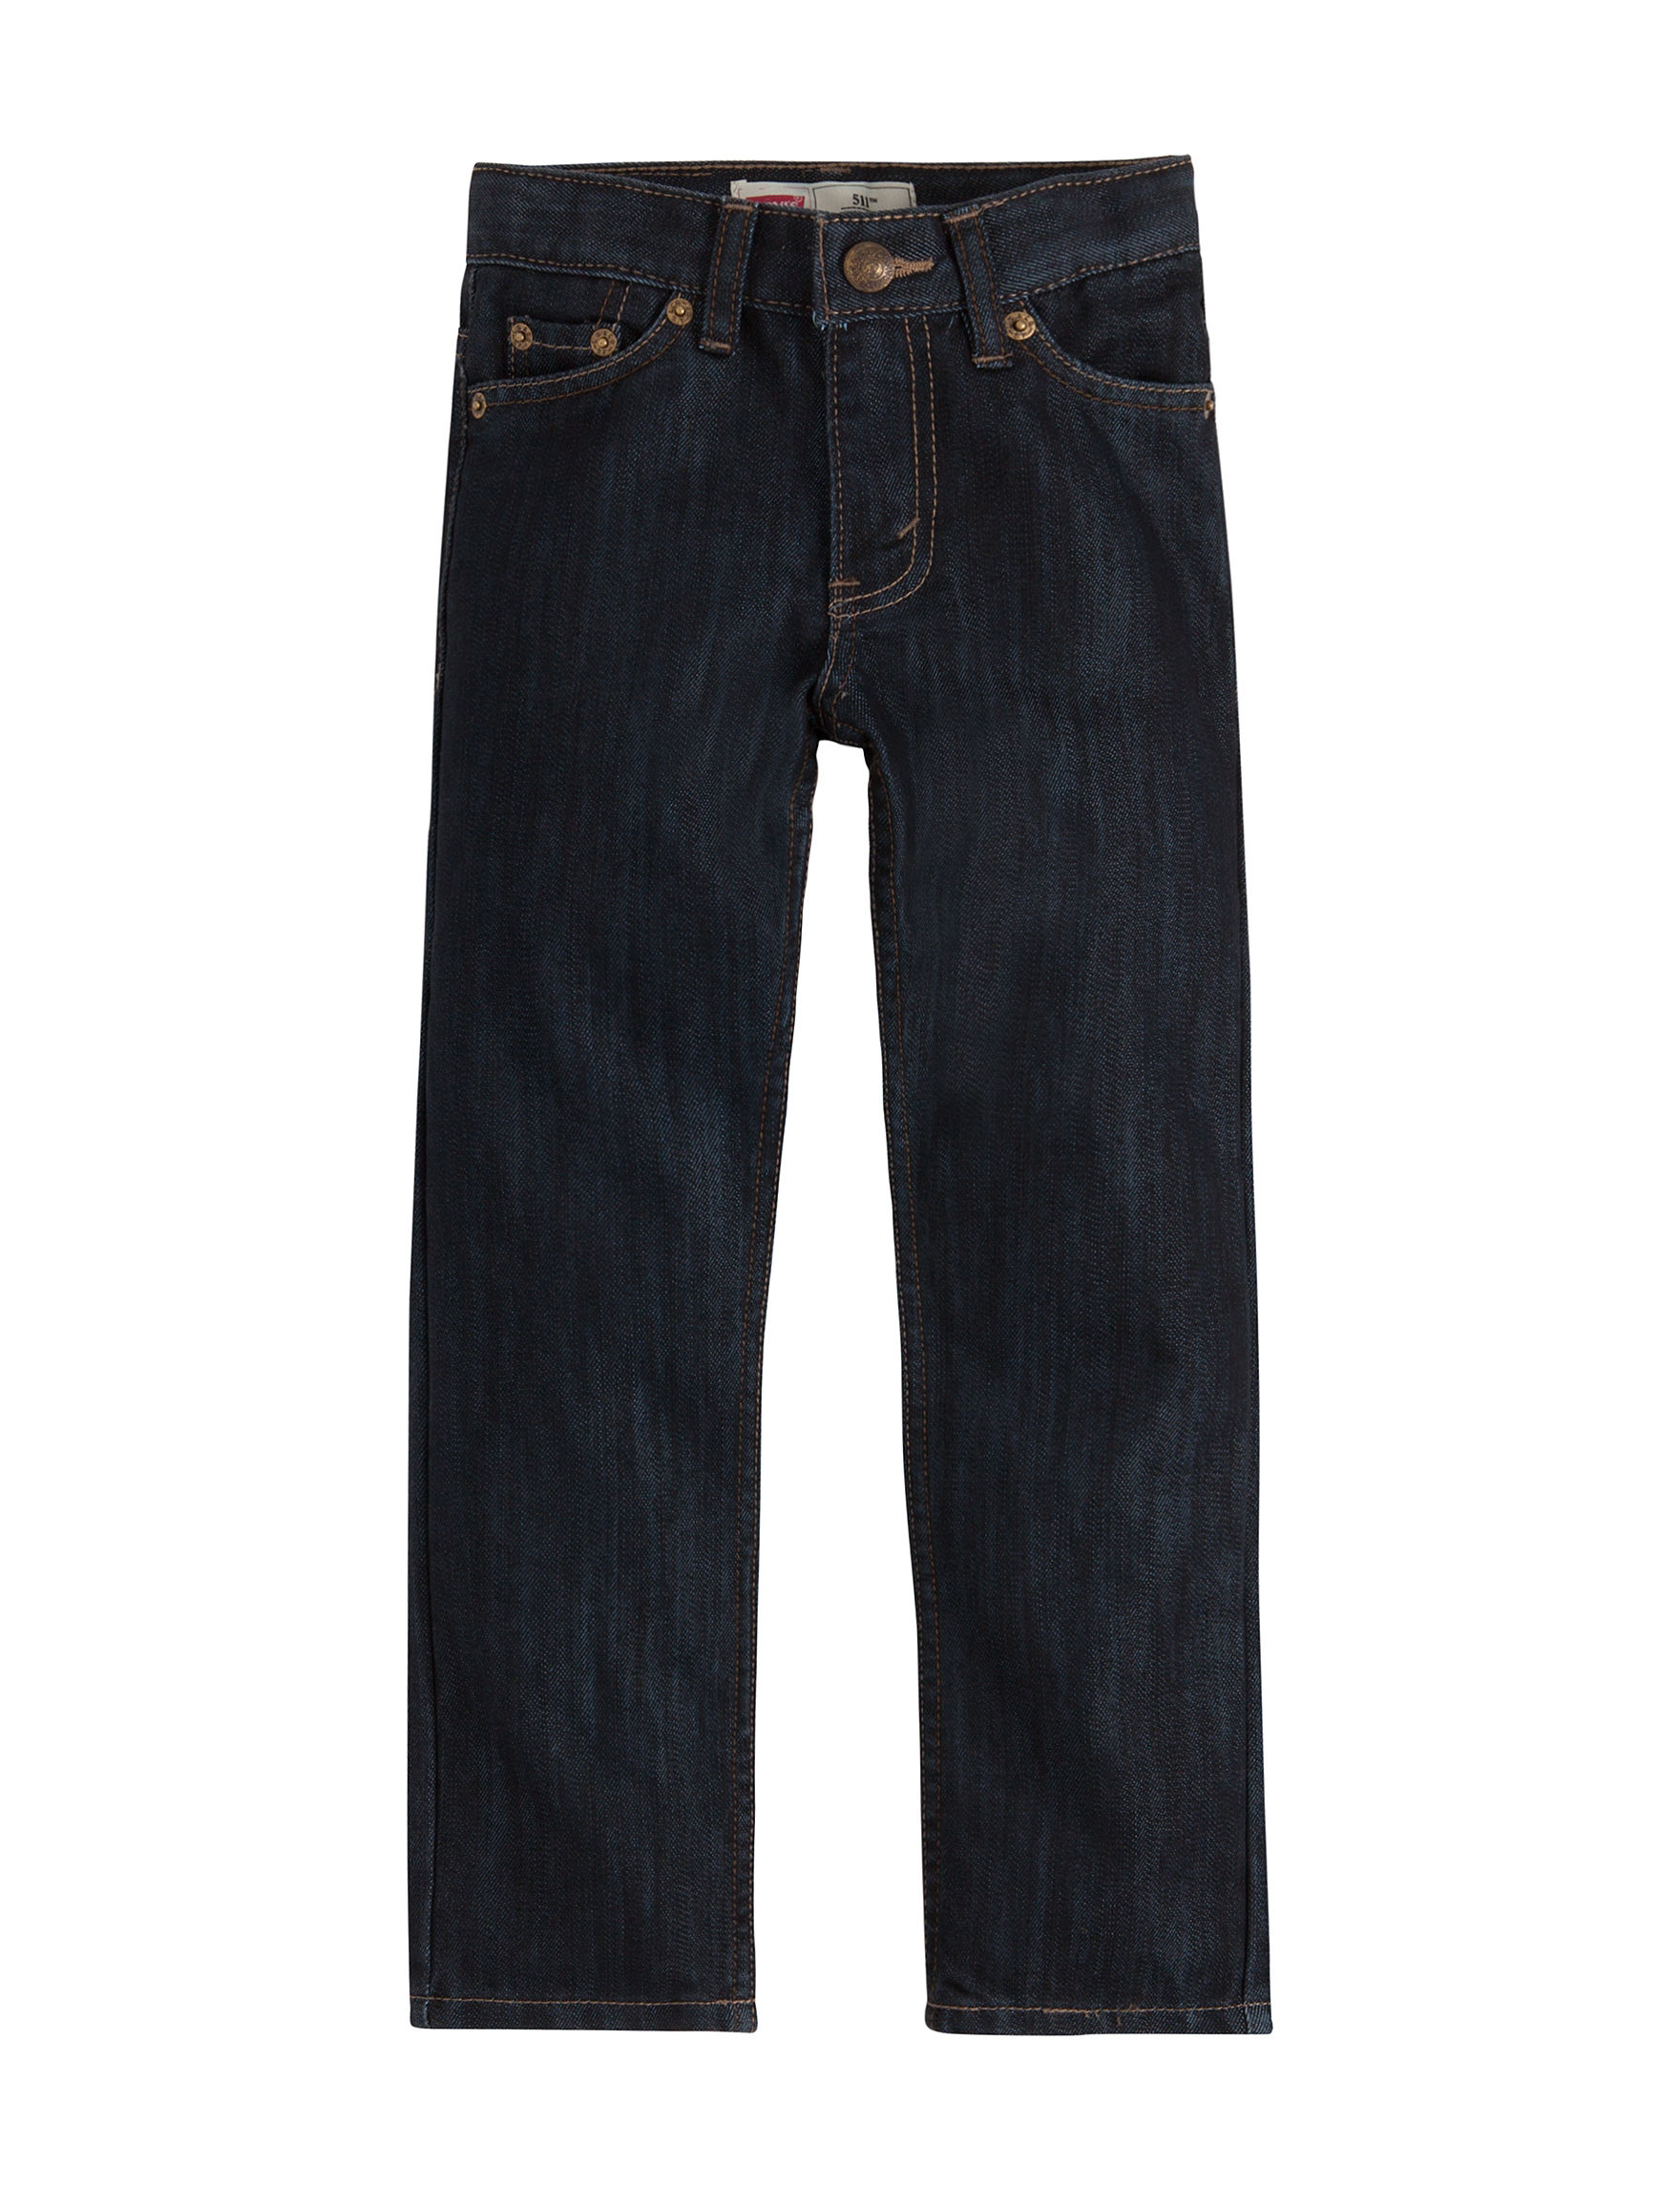 Levi's Navy Regular